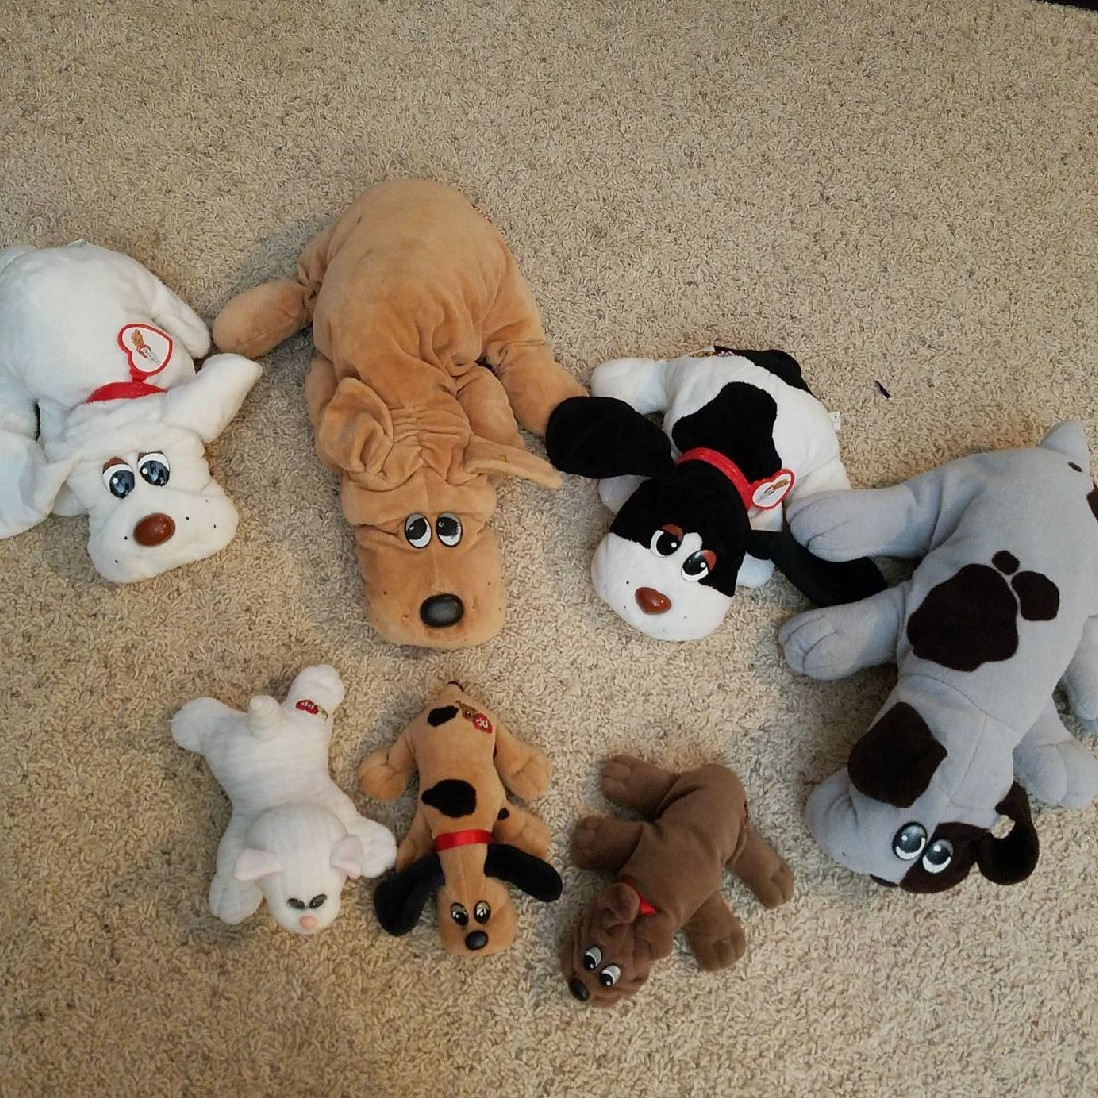 Pound puppies lot Mercari BUY & SELL THINGS YOU LOVE